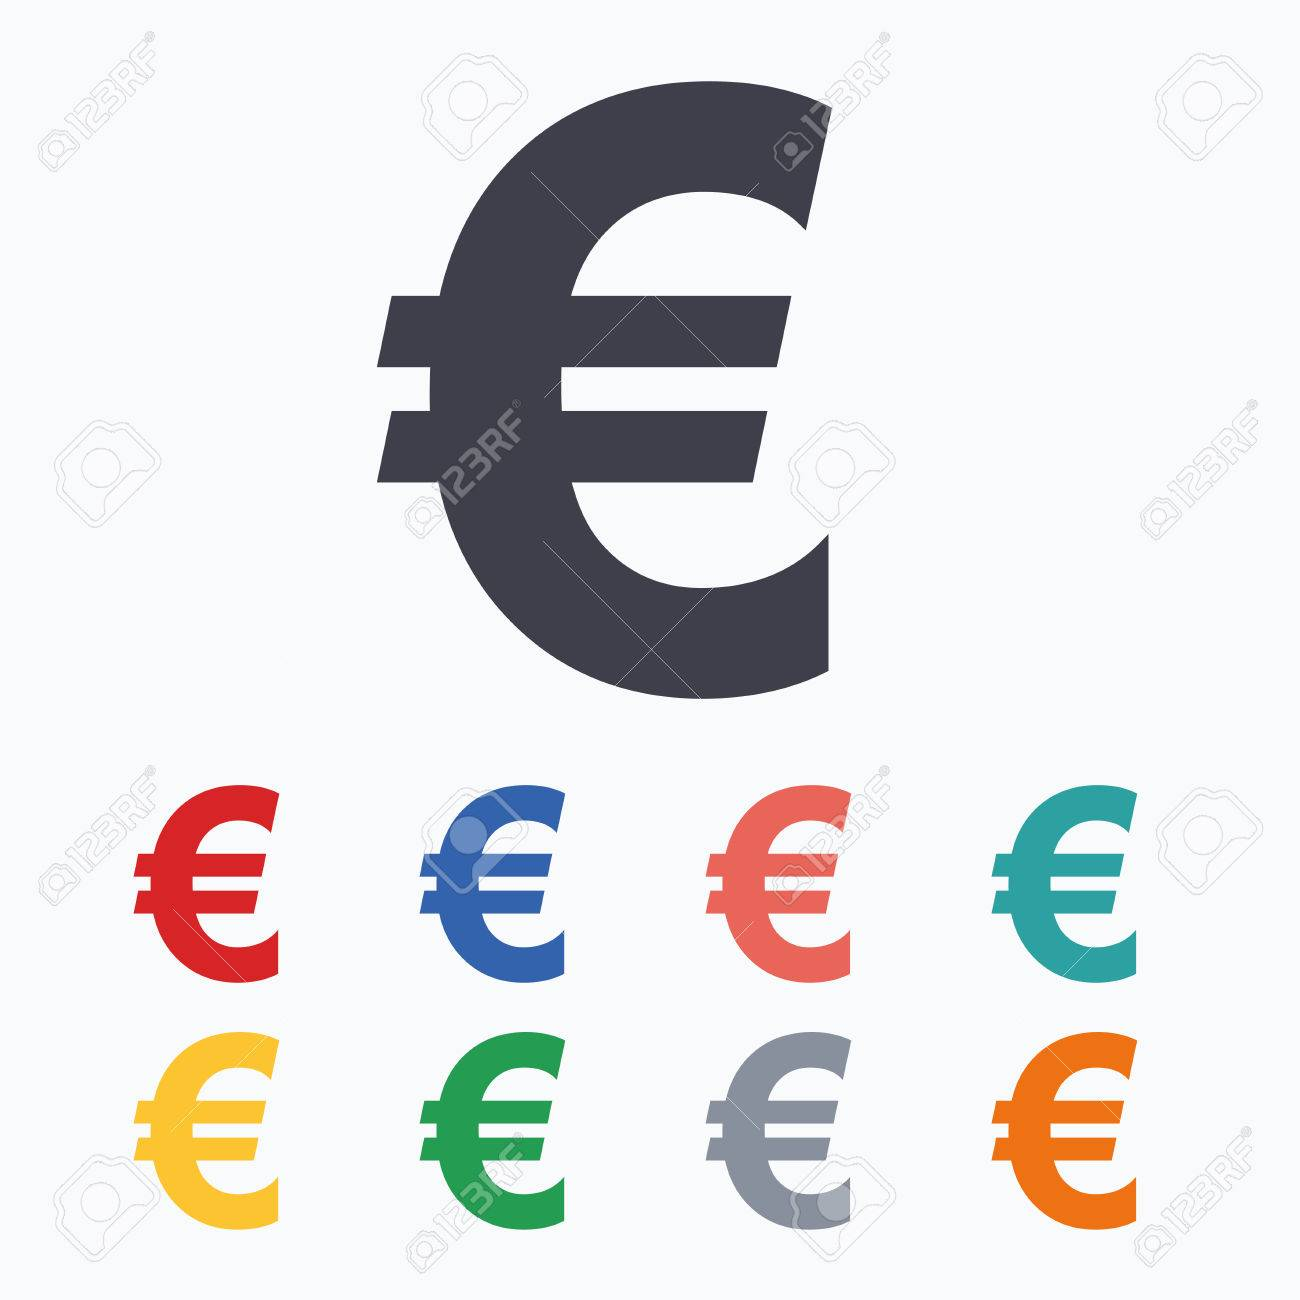 Euro sign icon eur currency symbol money label colored flat euro sign icon eur currency symbol money label colored flat icons on white buycottarizona Gallery